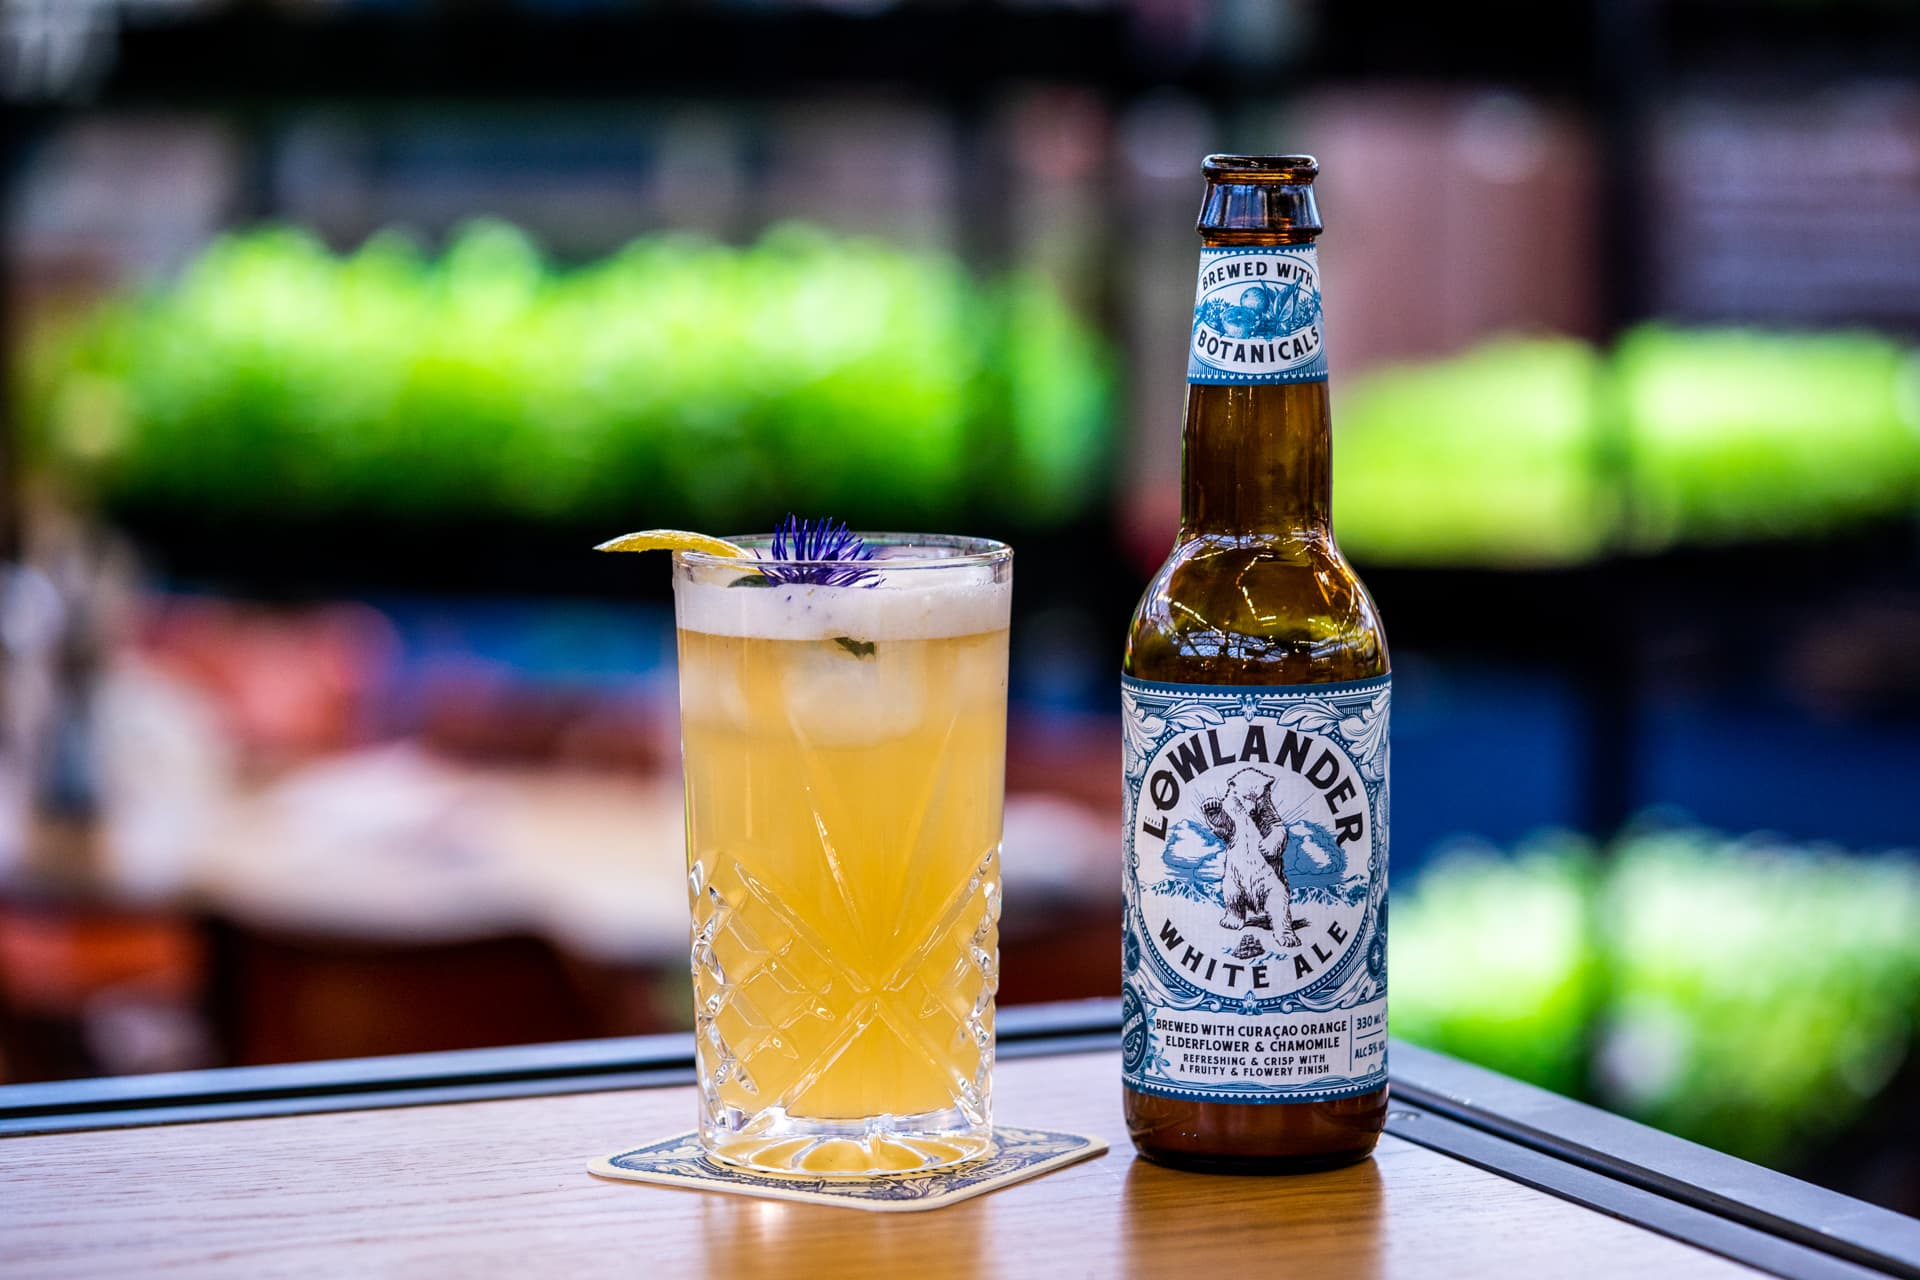 Lowlander Botanical Beers_Beertail_White Ale_White Collins